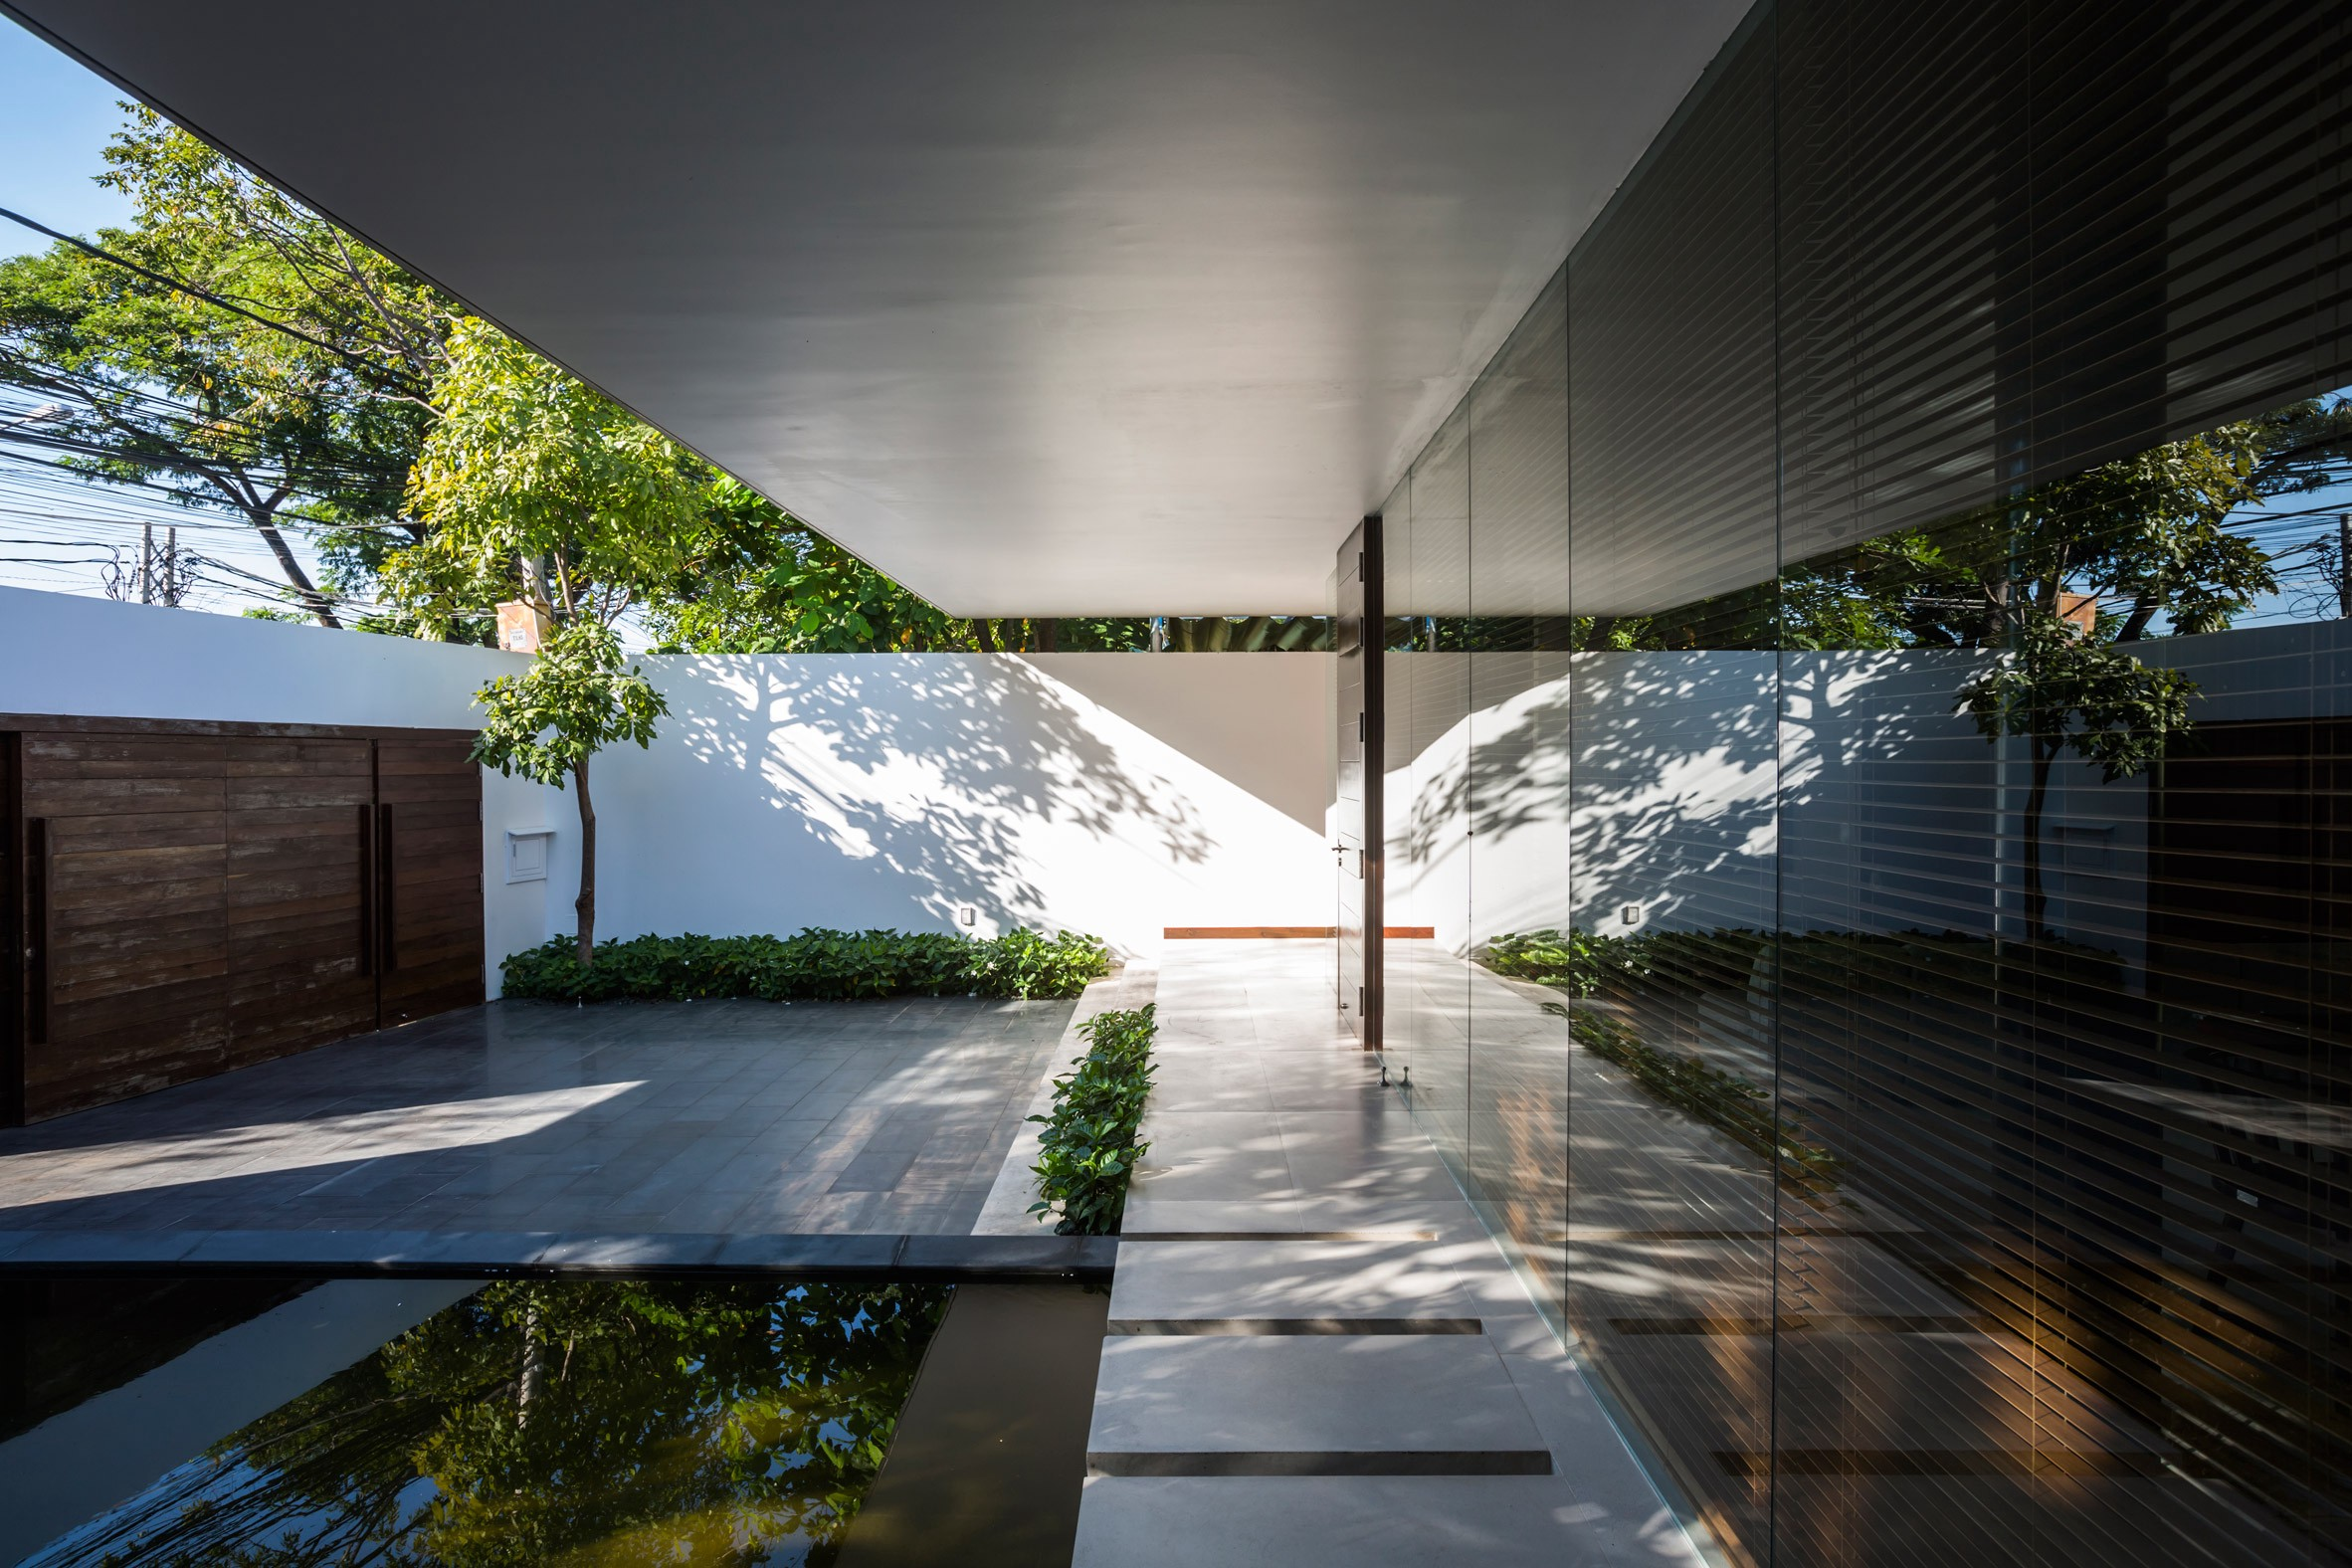 Mia Design Studio Envelopes Vietnam House In Plant Covered Walls And Courtyards By Julian Mouton Medium